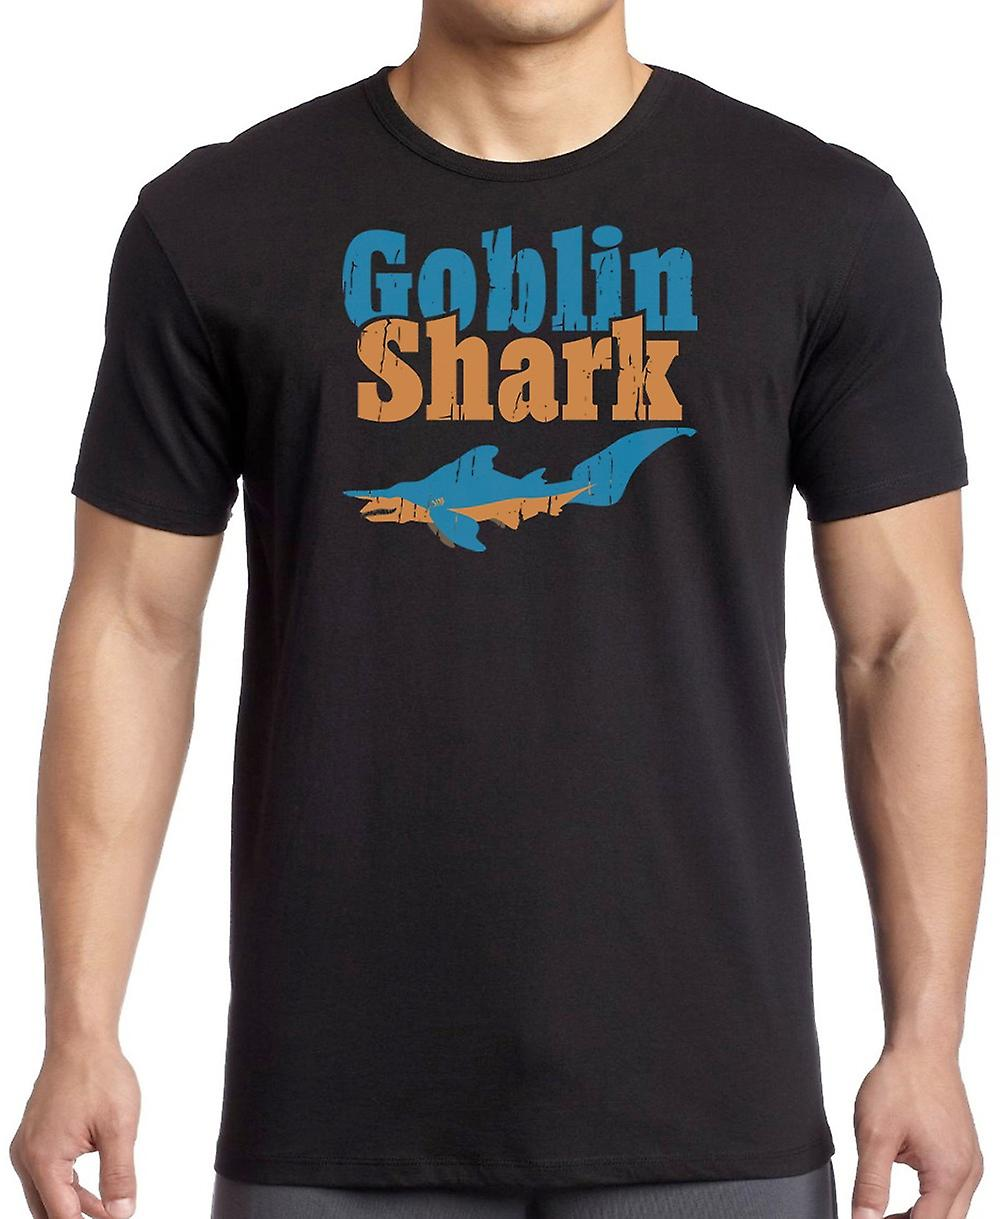 Goblin Shark - Starngest Looking Species T Shirt